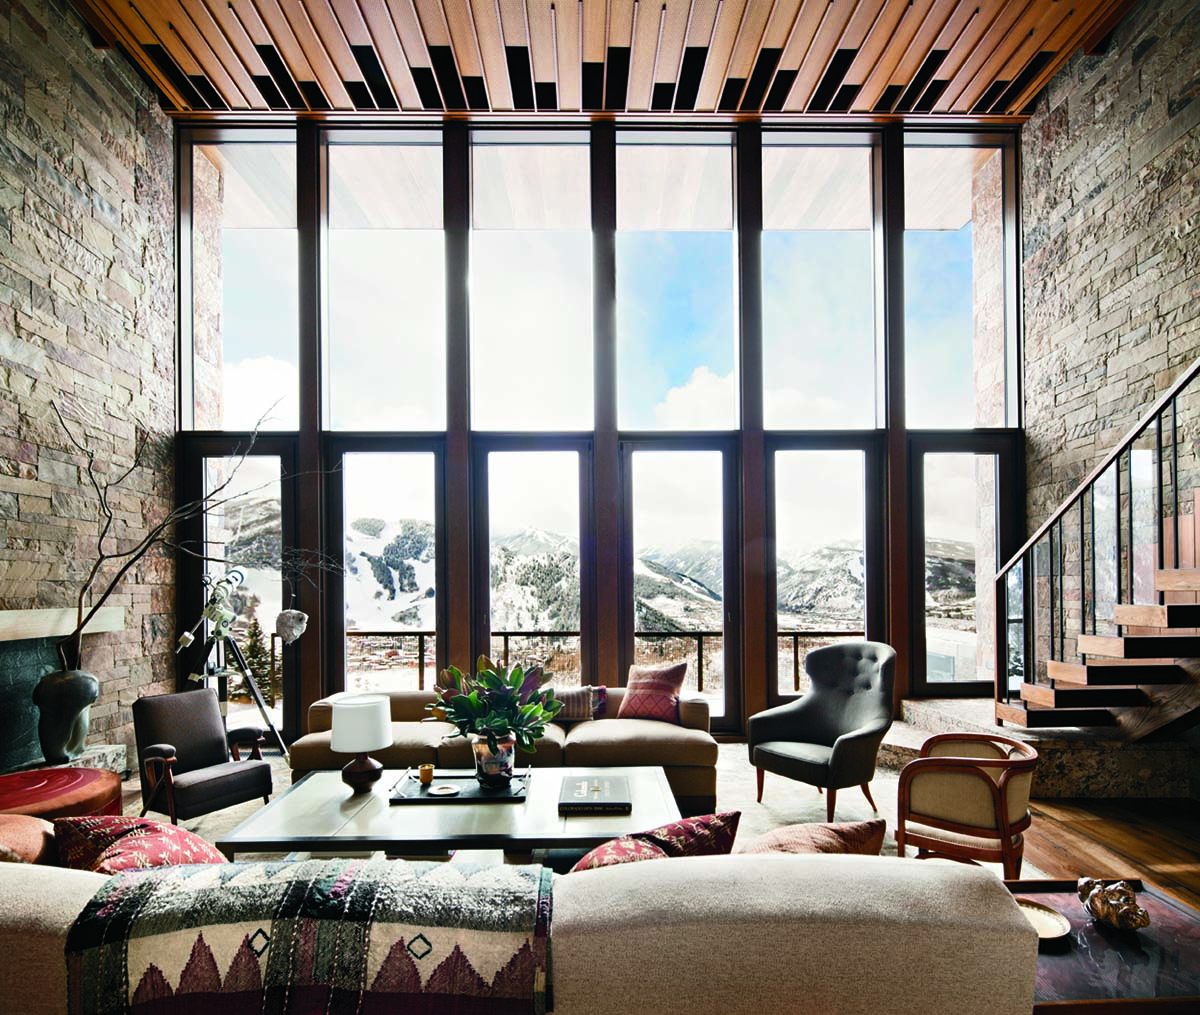 Stone walls flank mahogany ceiling and windows with views of the mountains in Aspen, Colorado.[1200×1015]